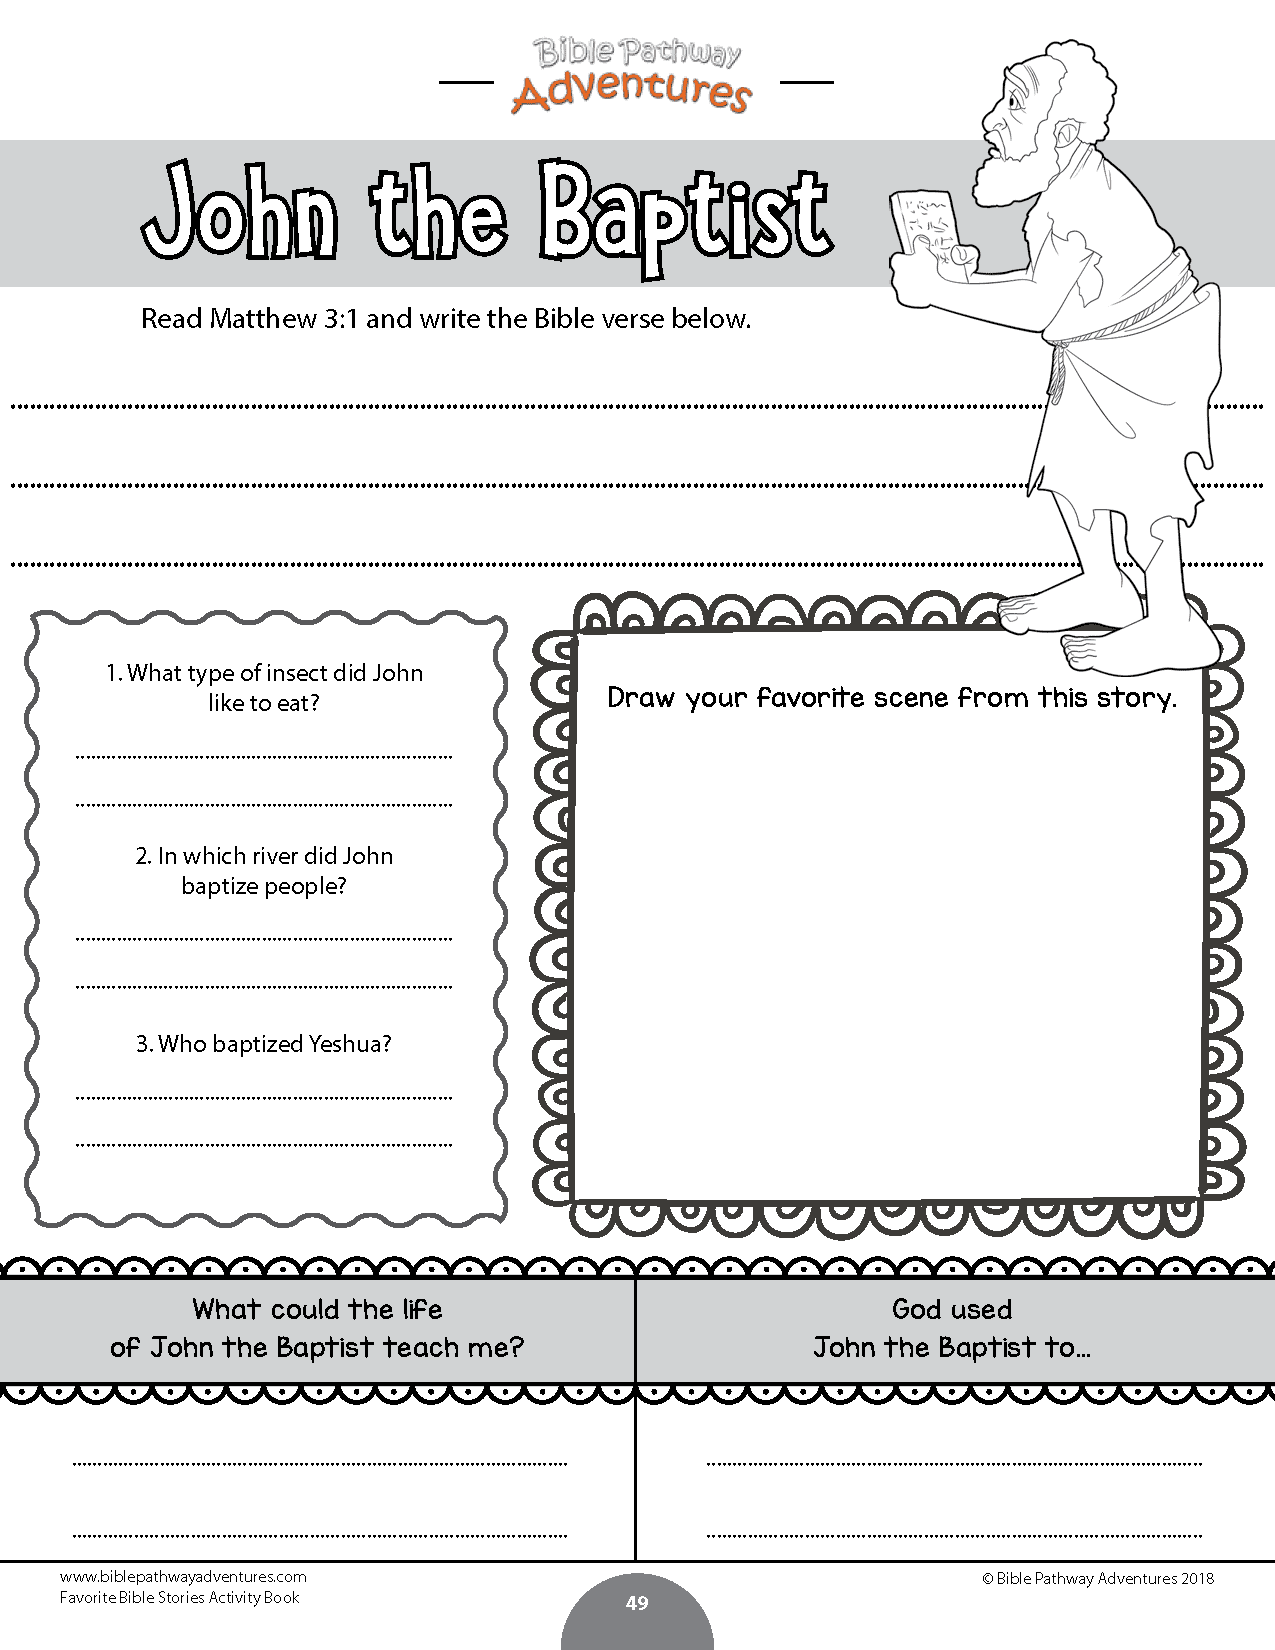 Favorite Bible Stories Coloring Activity Book Bible